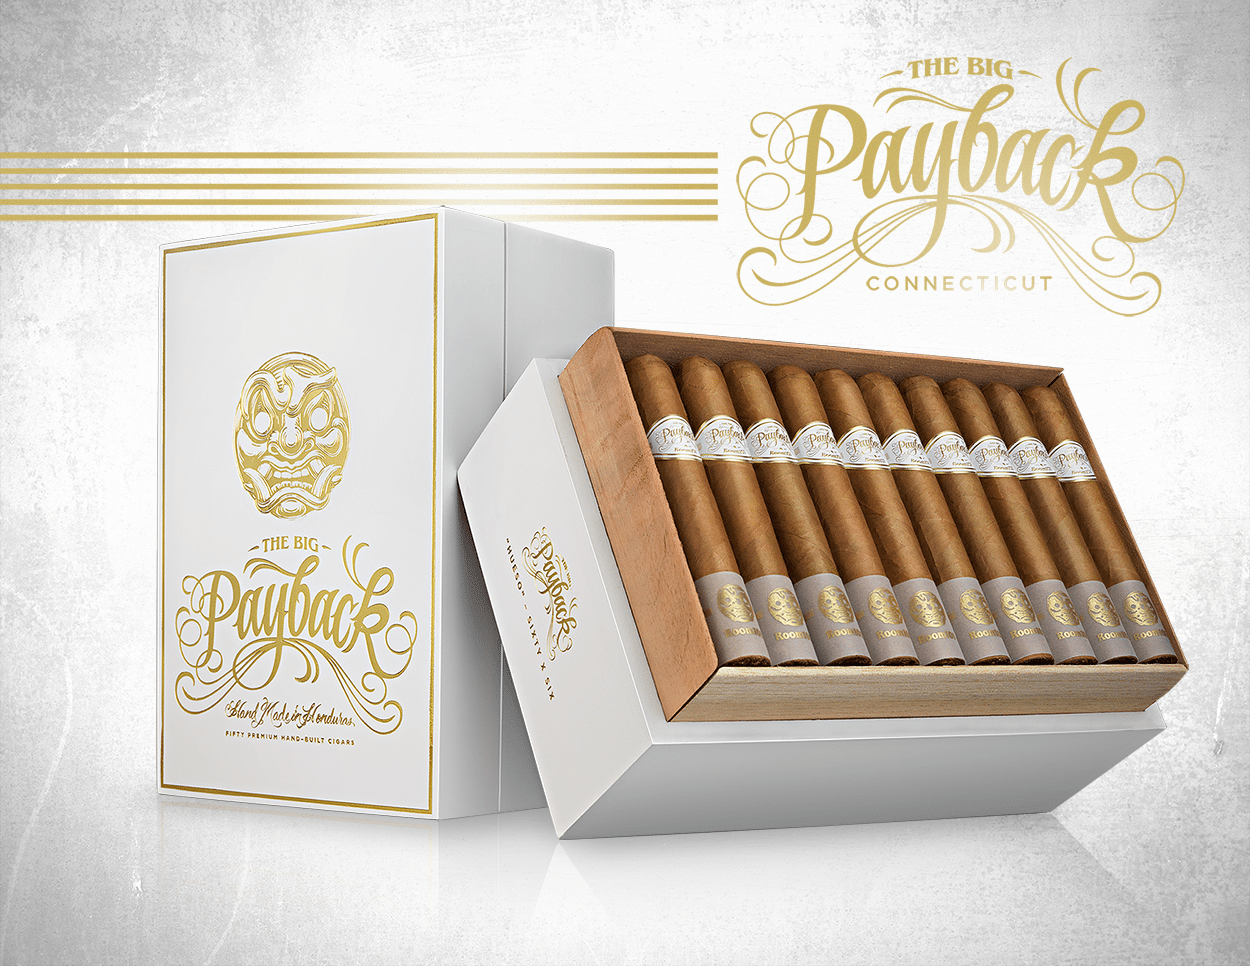 Cigar News: Room101 Launching Payback Connecticut